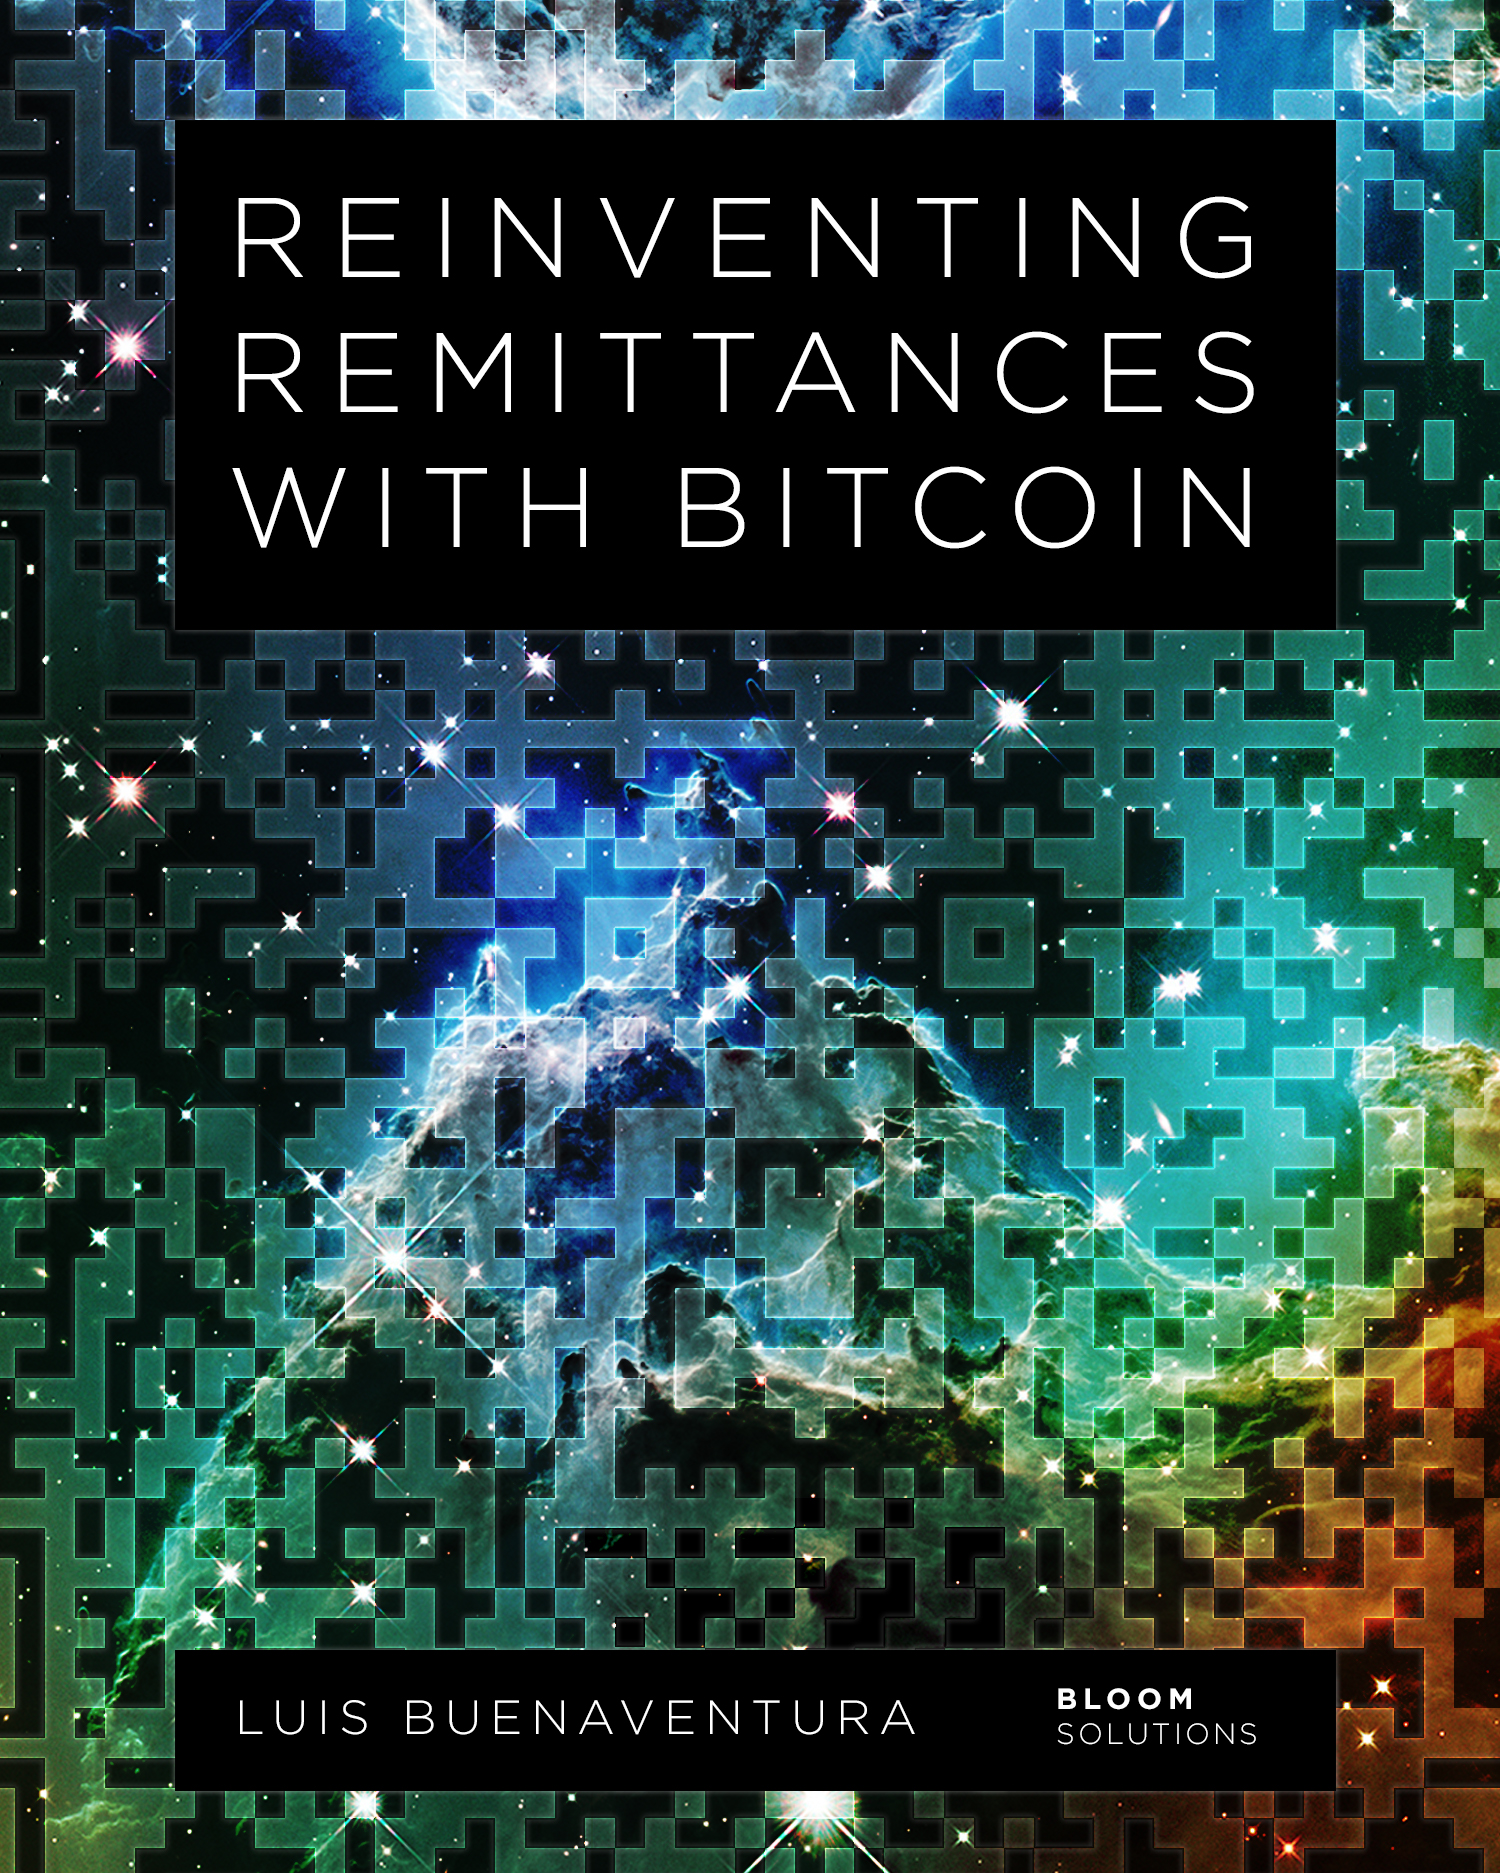 Stories from the startups on the front lines - The team at Bloom are passionate pioneers of the Bitcoin remittance industry as well as its most enthusiastic observers, and this book is our contribution back to this growing community.We've spent the last few years focusing exclusively on cryptocurrency as a mechanism for cross-border money transfer, and we've managed to meet and learn from many of the other Bitcoin remittance players out there.Reinventing Remittances is a collection of conversations, essays, and real data from the field, and is illustrated with tons of graphics and photos. (See the page samples.)The digital edition will be regularly updated with new information, so please sign up for our newsletter below to receive notifications on new chapters!